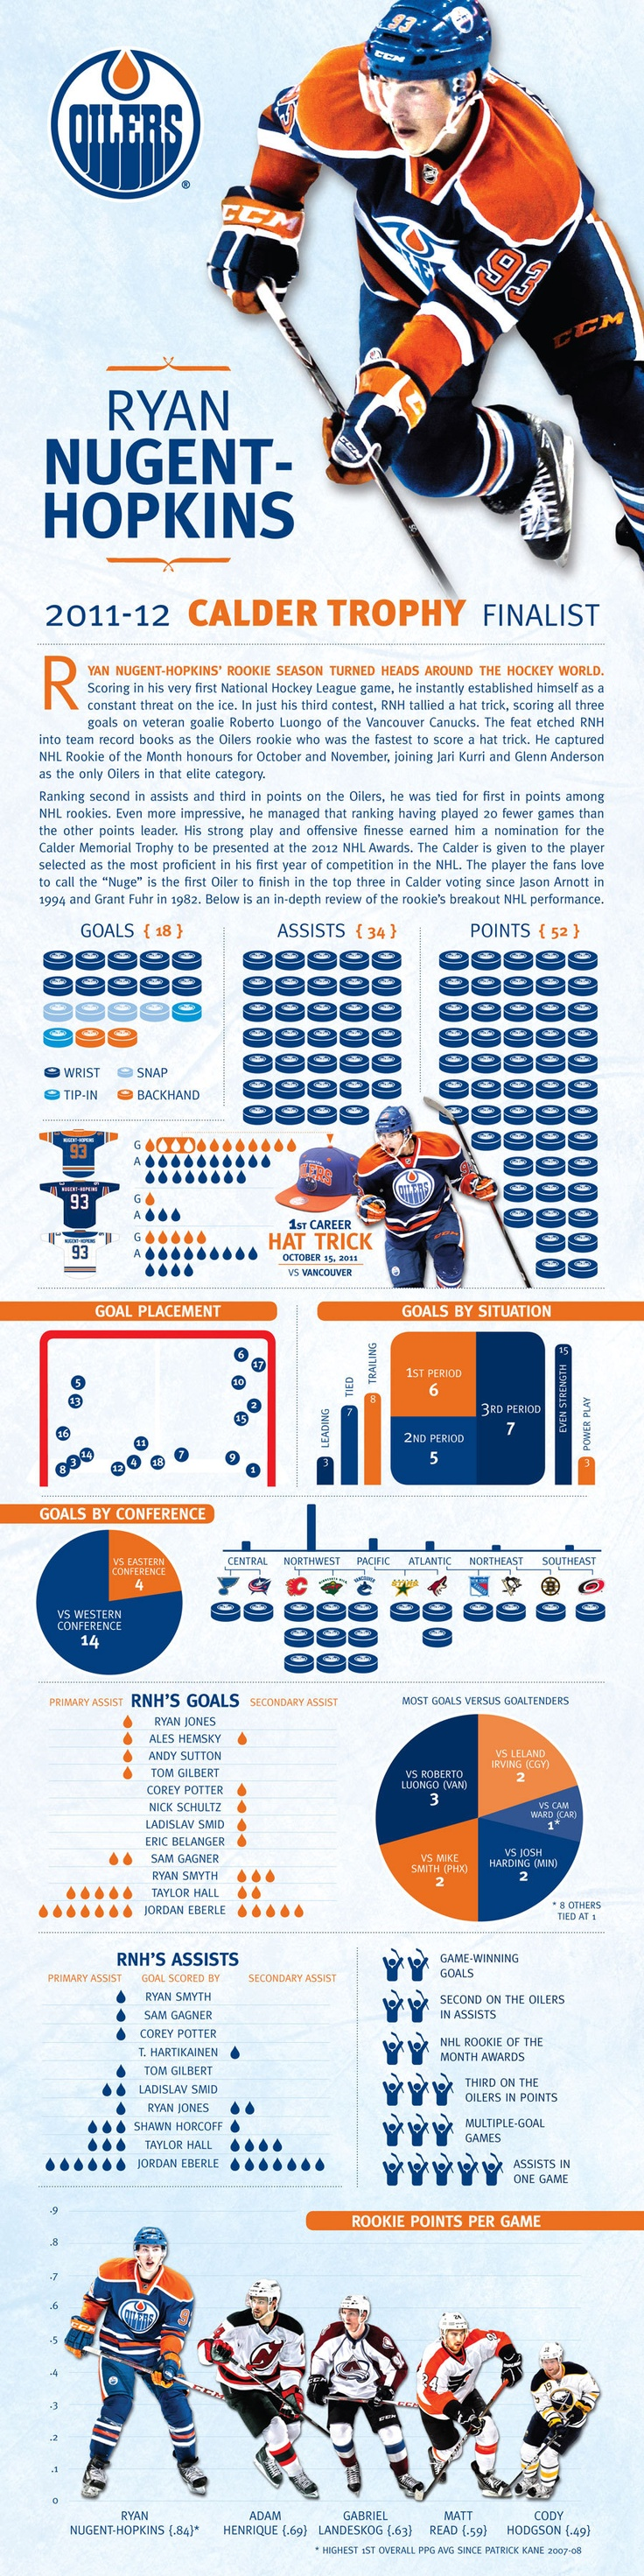 Ryan Nugent-Hopkins Infographic - Edmonton Oilers